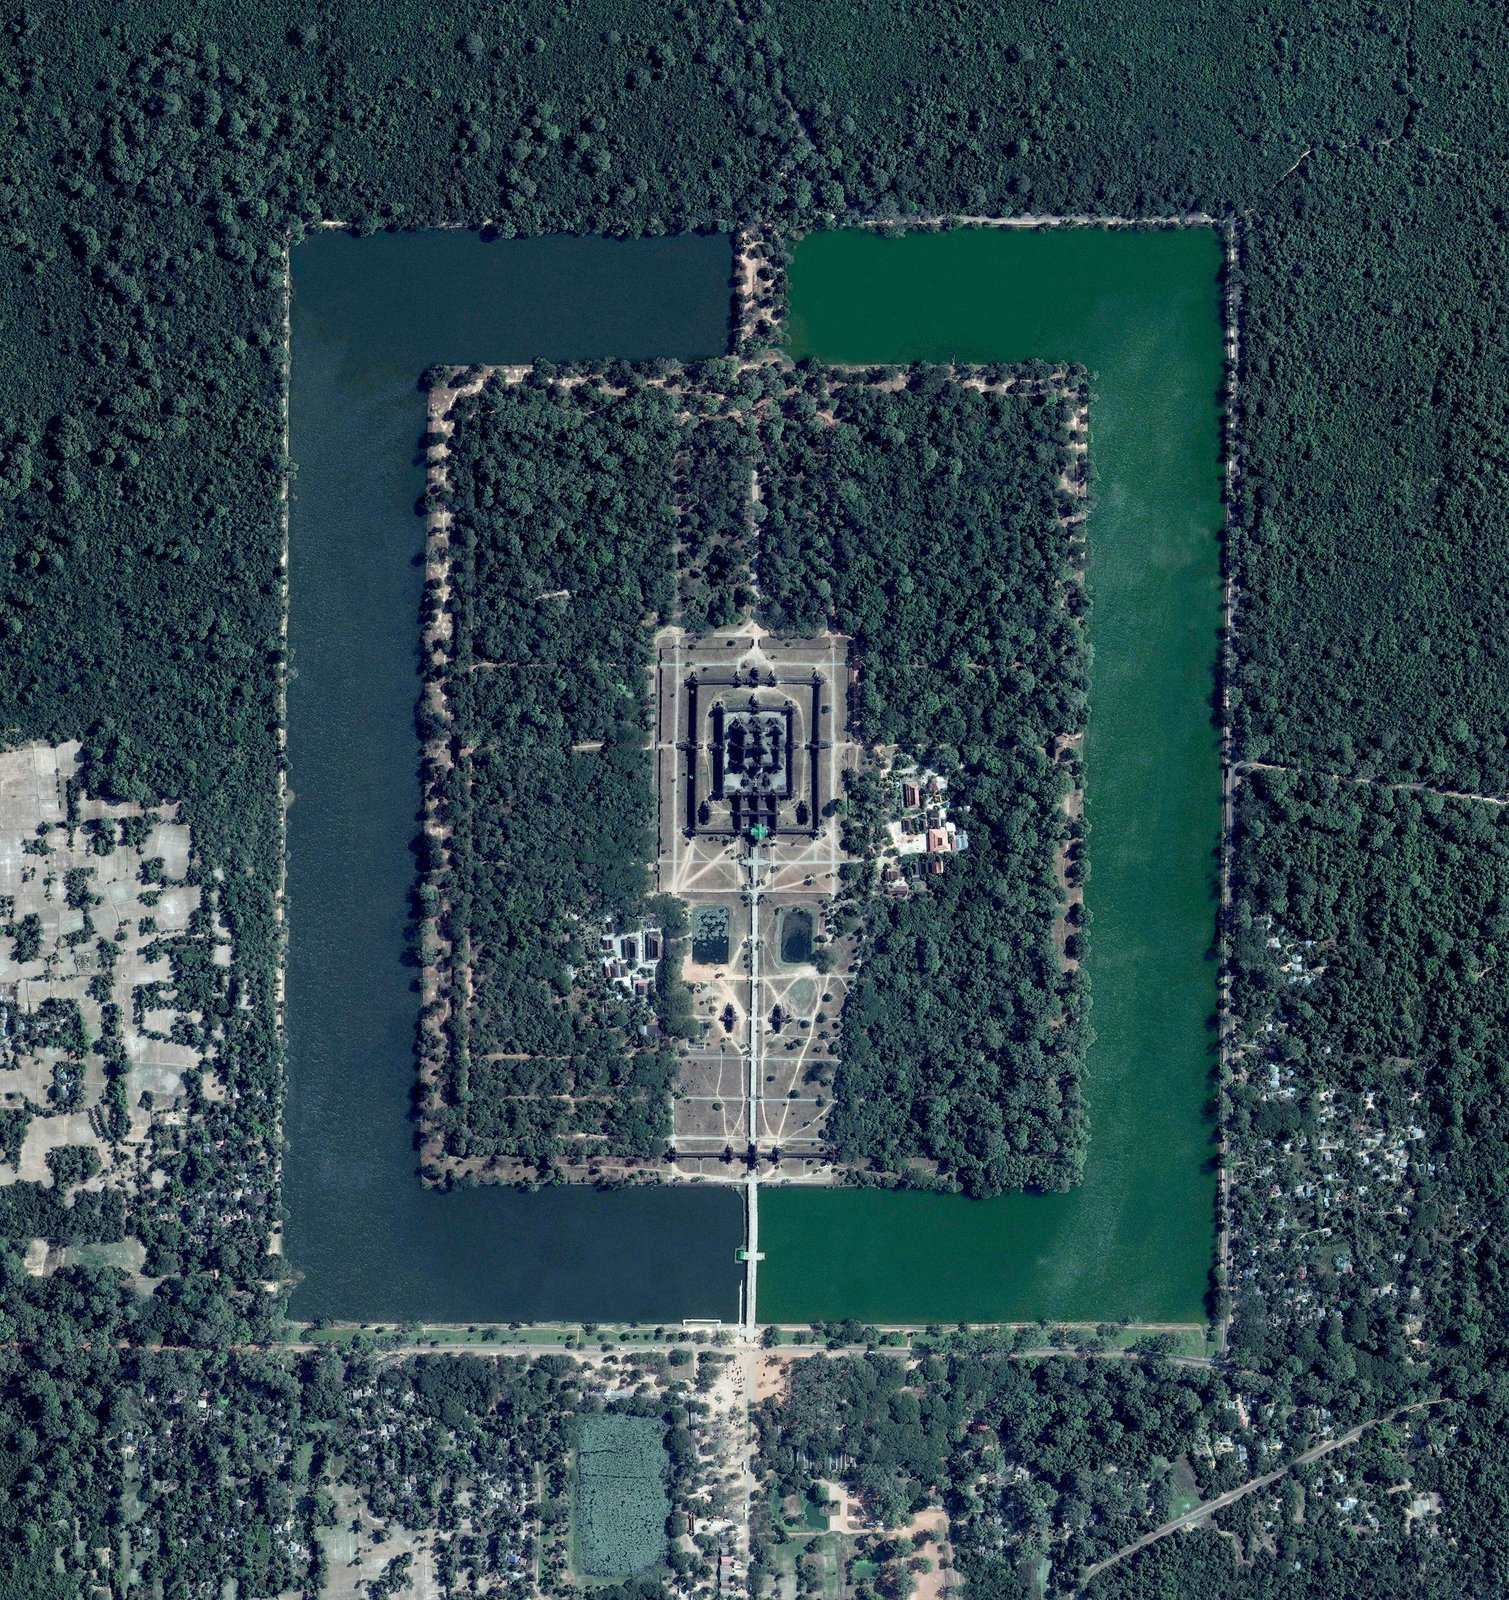 Cambodia's famous landmark, the Angkor Wat temple complex, constructed in the 12th century, is the largest religious monument in the world, surrounded by a moat and a forest. Reprinted with permission from Overview by Benjamin Grant, copyright (c) 2016. Published by Amphoto Books, a division of Penguin Random House, Inc.   Images (c) 2016 by DigitalGlobe, Inc.   Ever Wondered About the View from Space? by Aileen Kwun